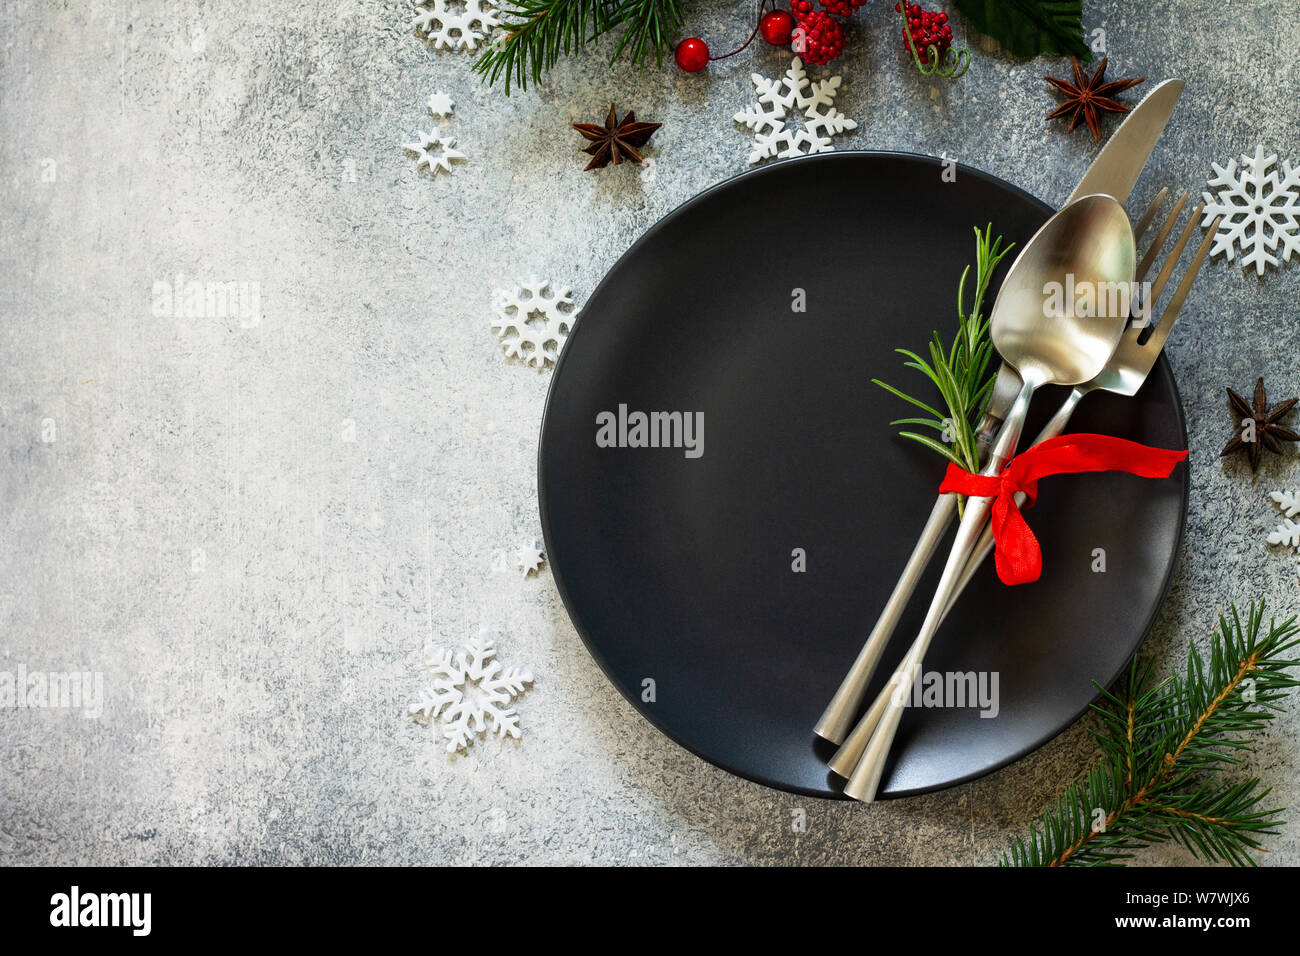 Christmas background. Christmas decoration table. Festive black plate and cutlery with Christmas decor on retro festive table. Top view flat lay. Free Stock Photo